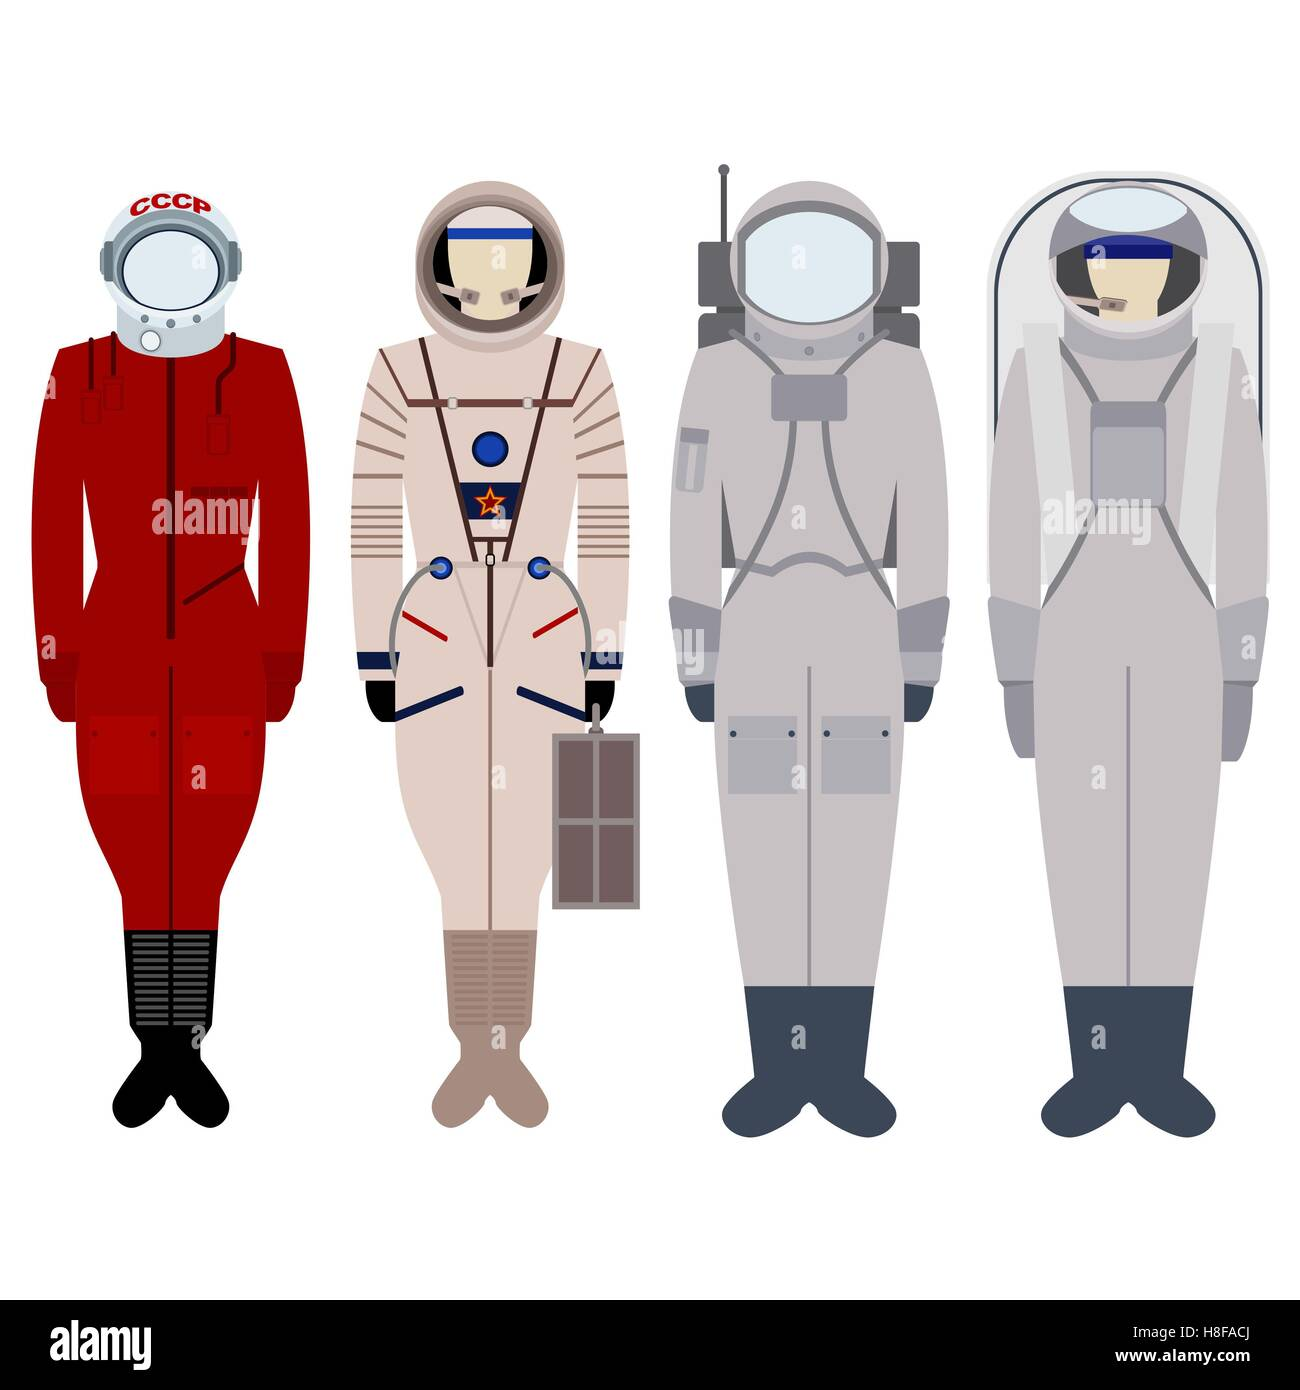 Spacesuit for spacewalk. Illustration on white background - Stock Image